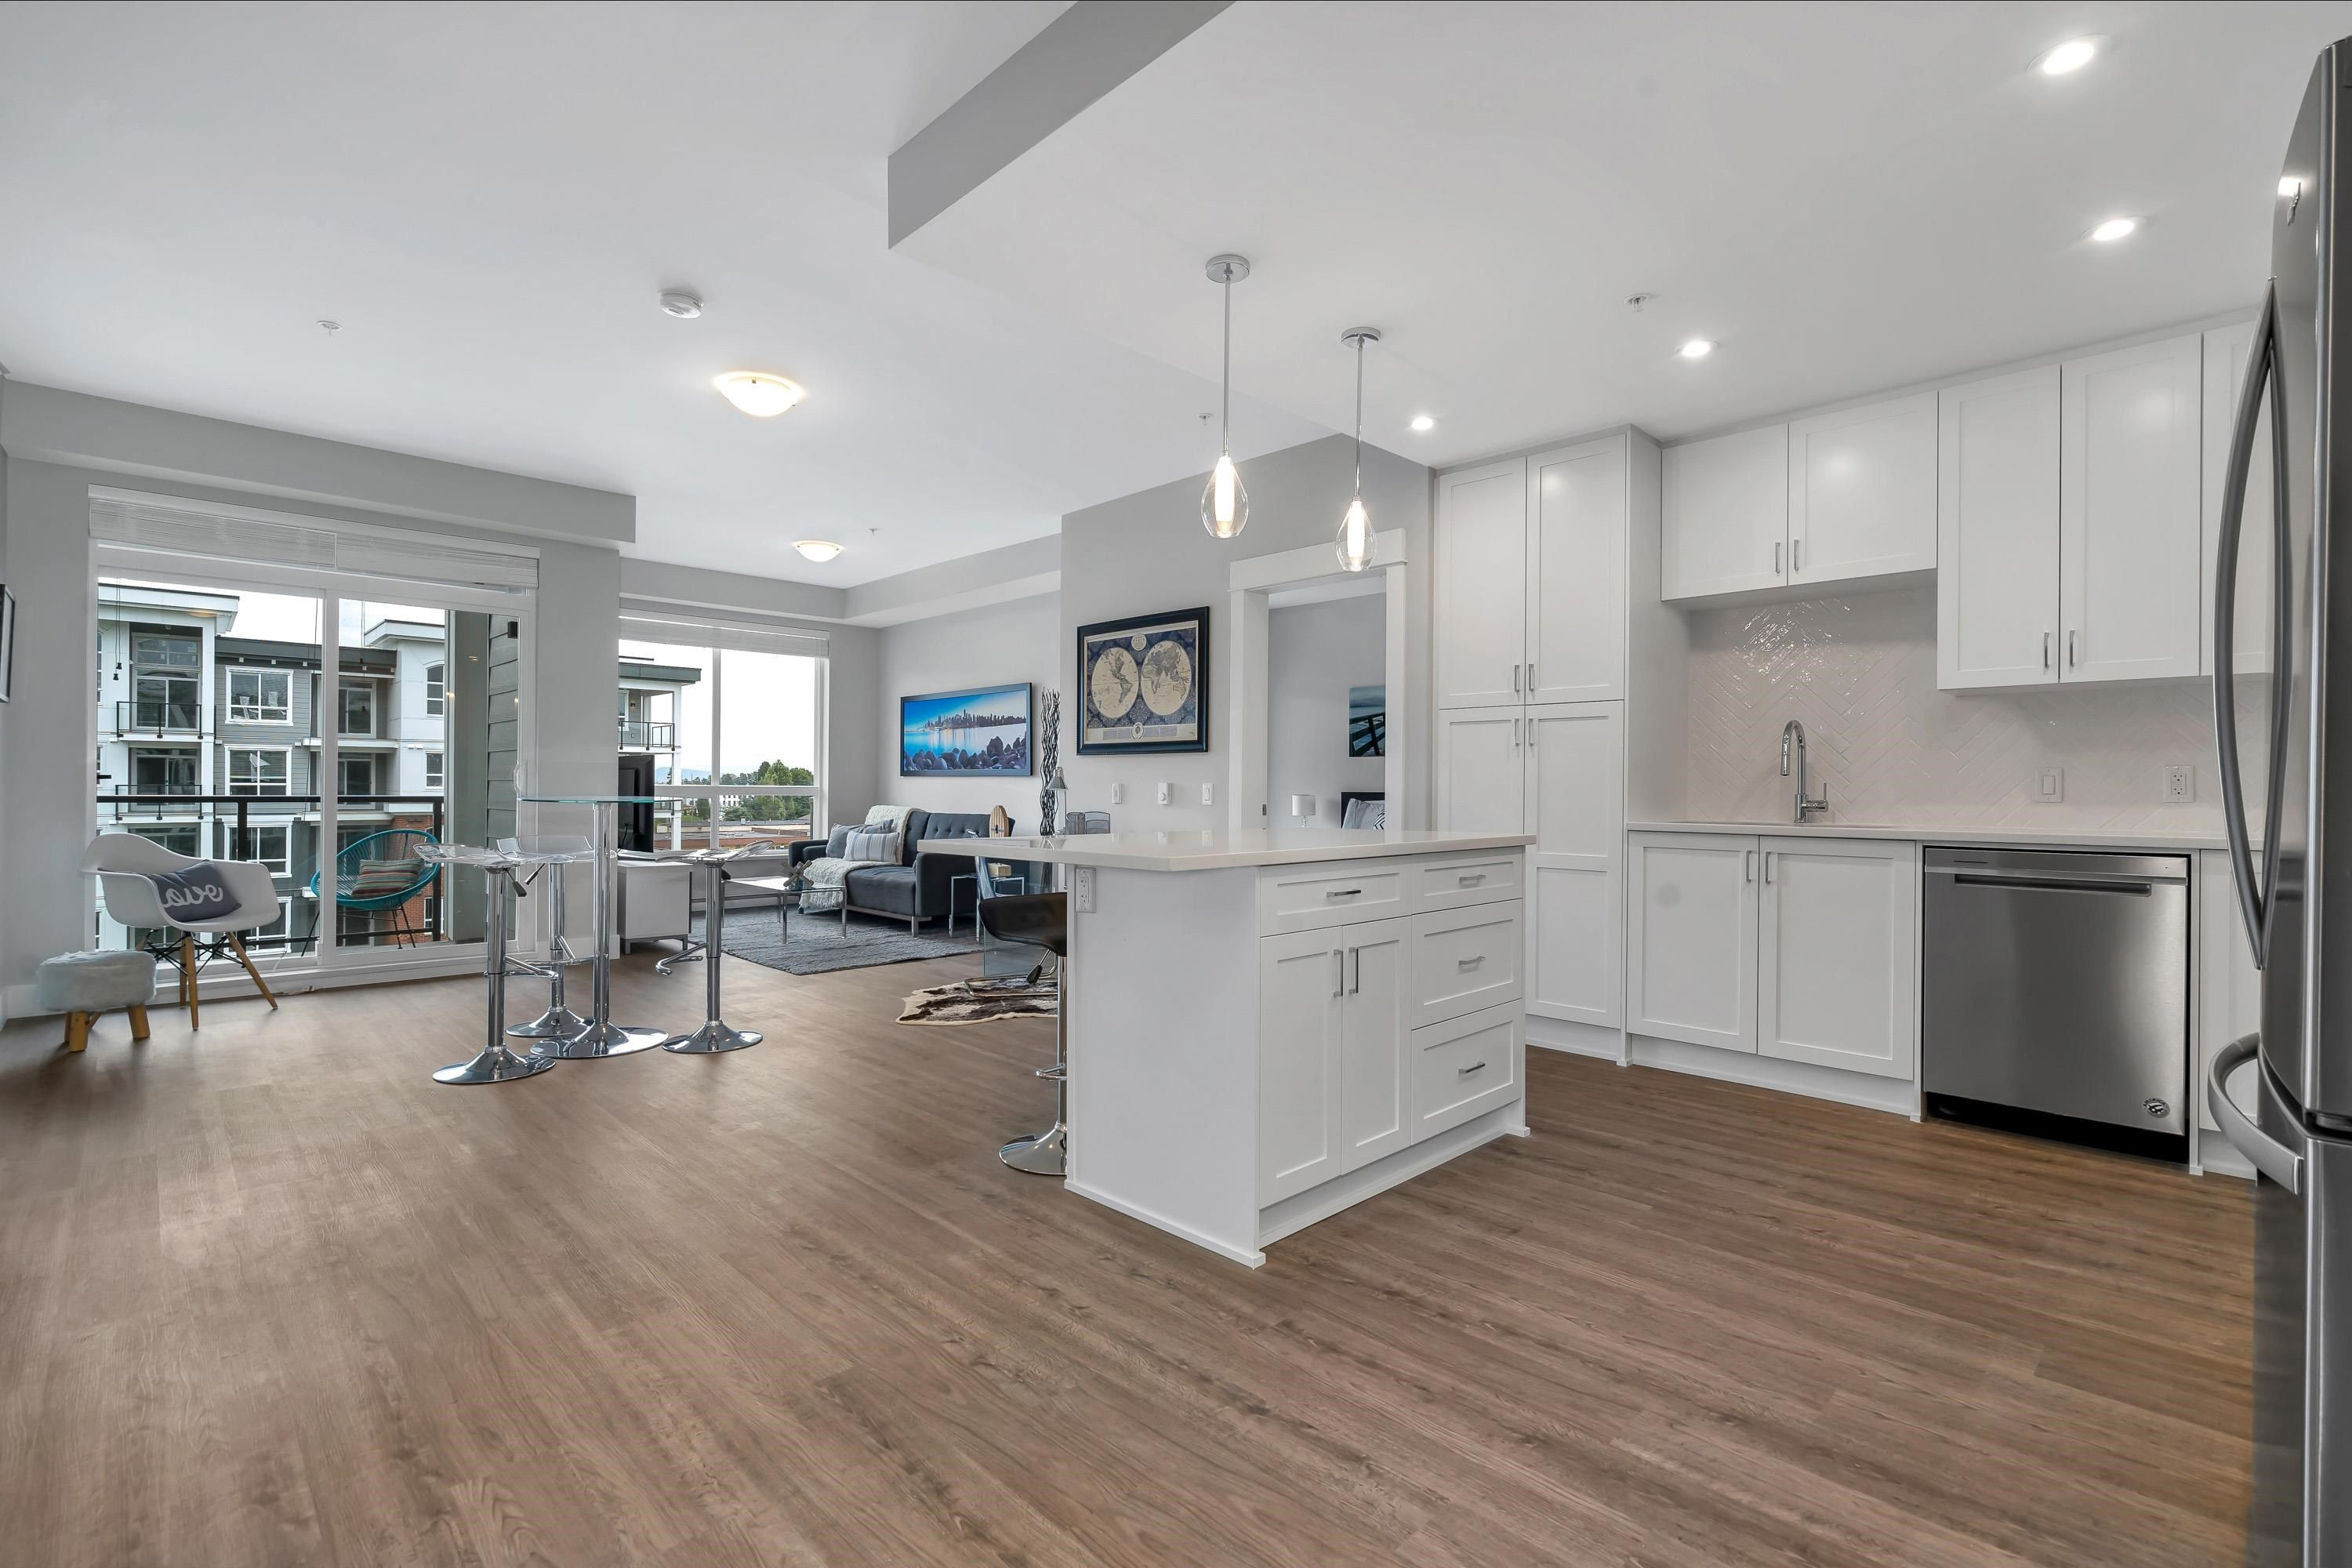 """Main Photo: 4515 2180 KELLY Avenue in Port Coquitlam: Central Pt Coquitlam Condo for sale in """"Montrose Square"""" : MLS®# R2622449"""